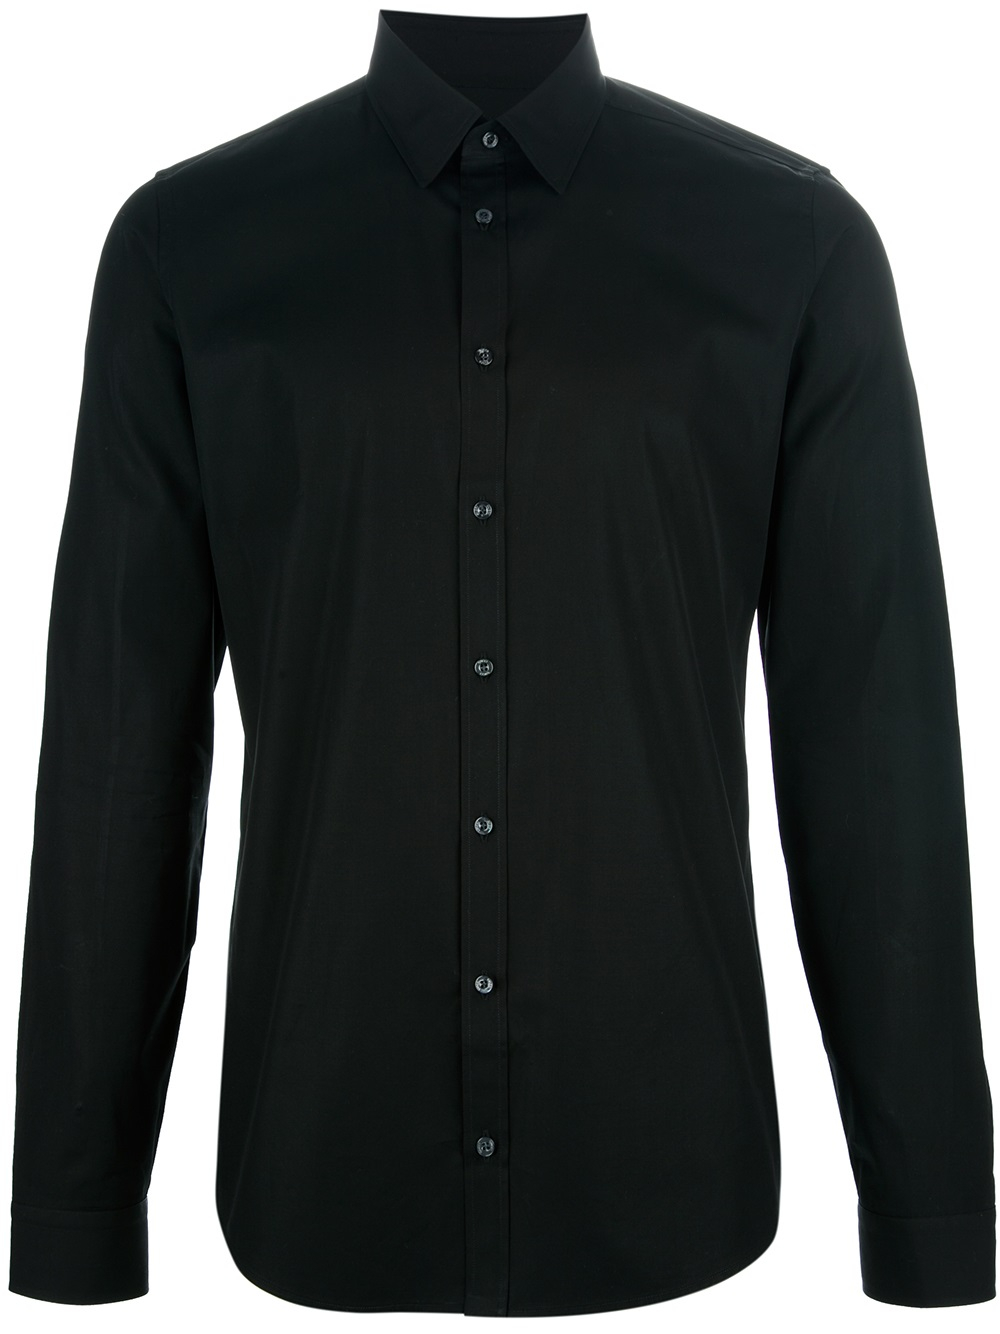 Black Button Down Shirt For Men